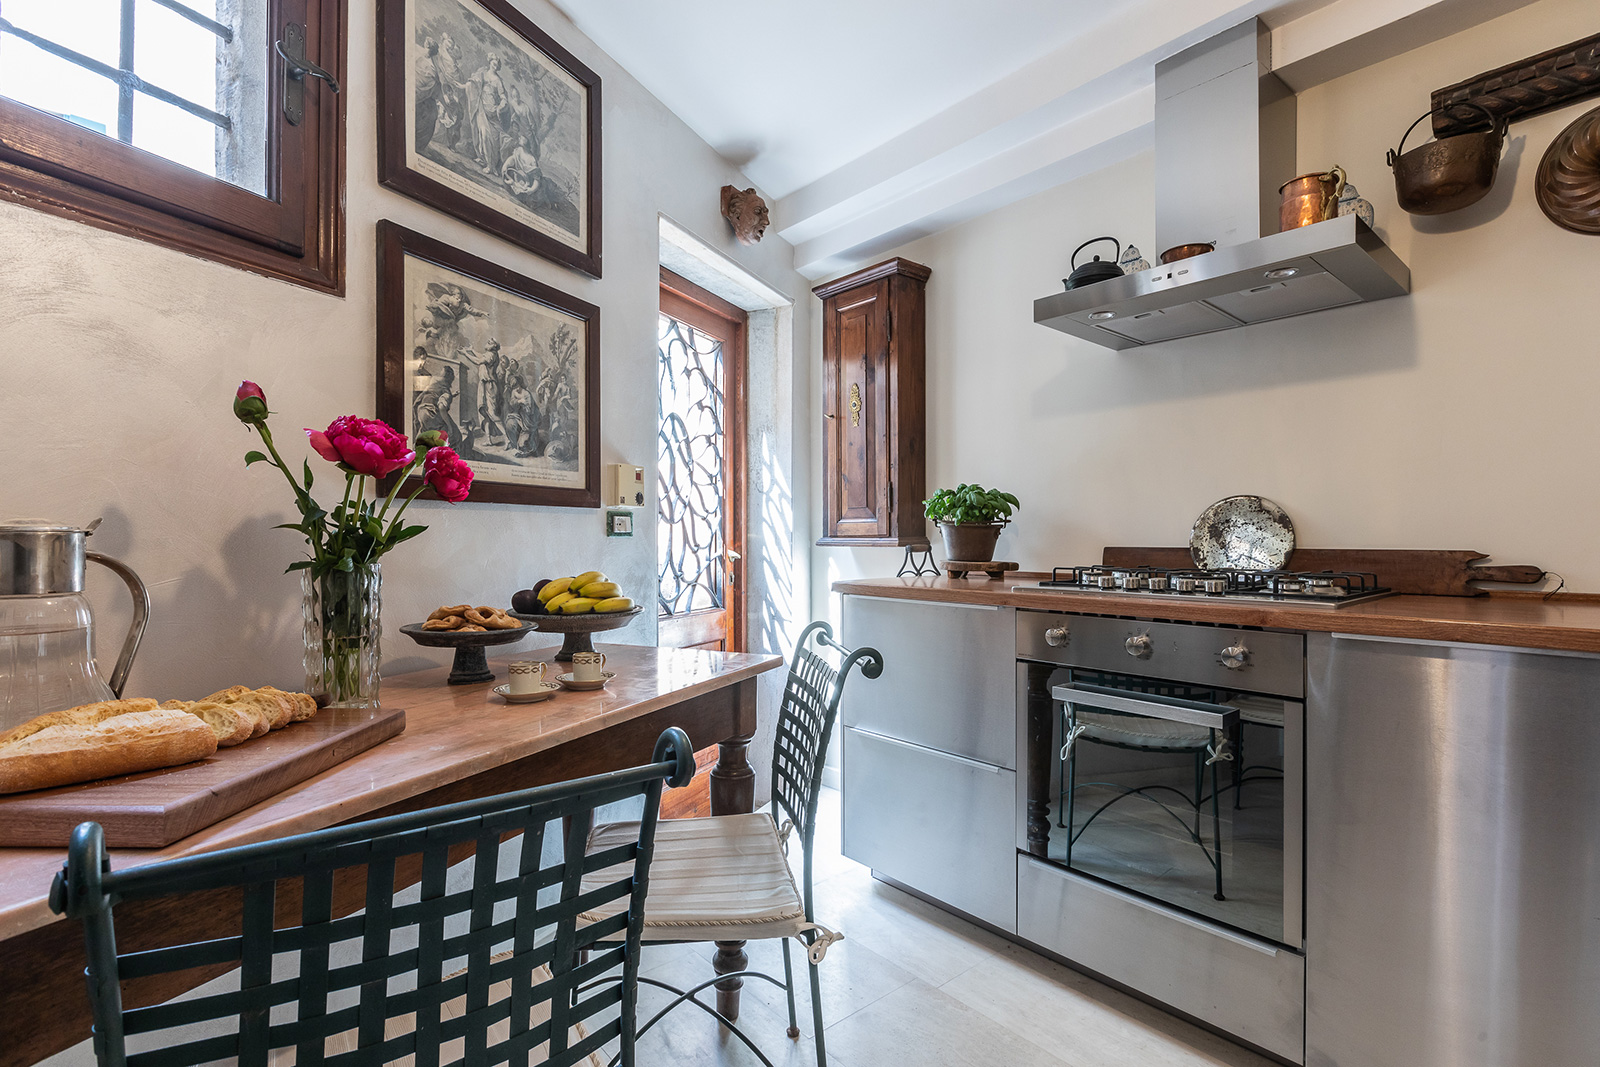 the kitchen opens on the private courtyard